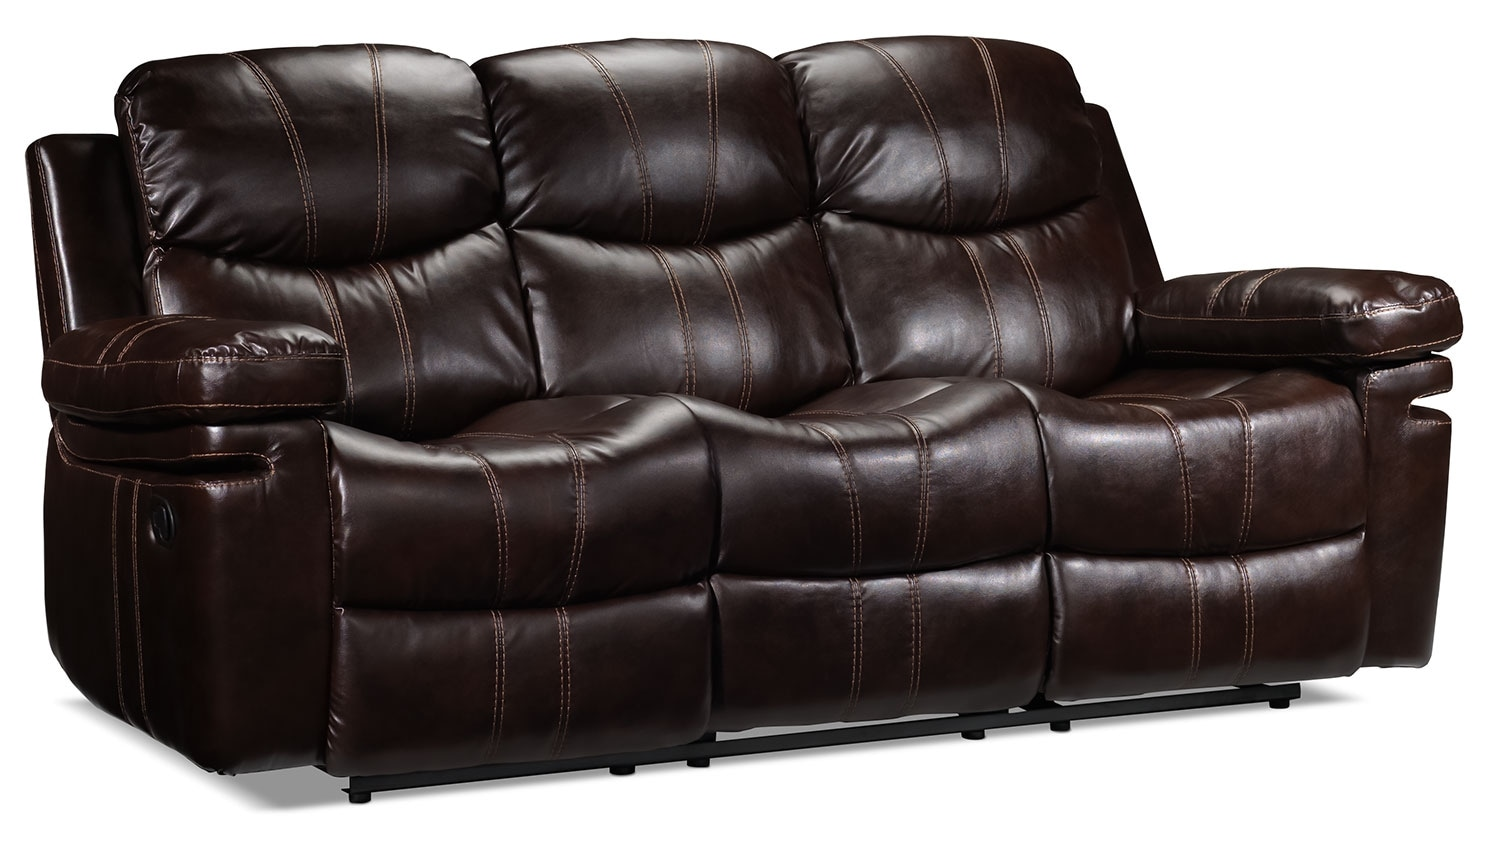 Living Room Furniture - Barcelona Reclining Sofa